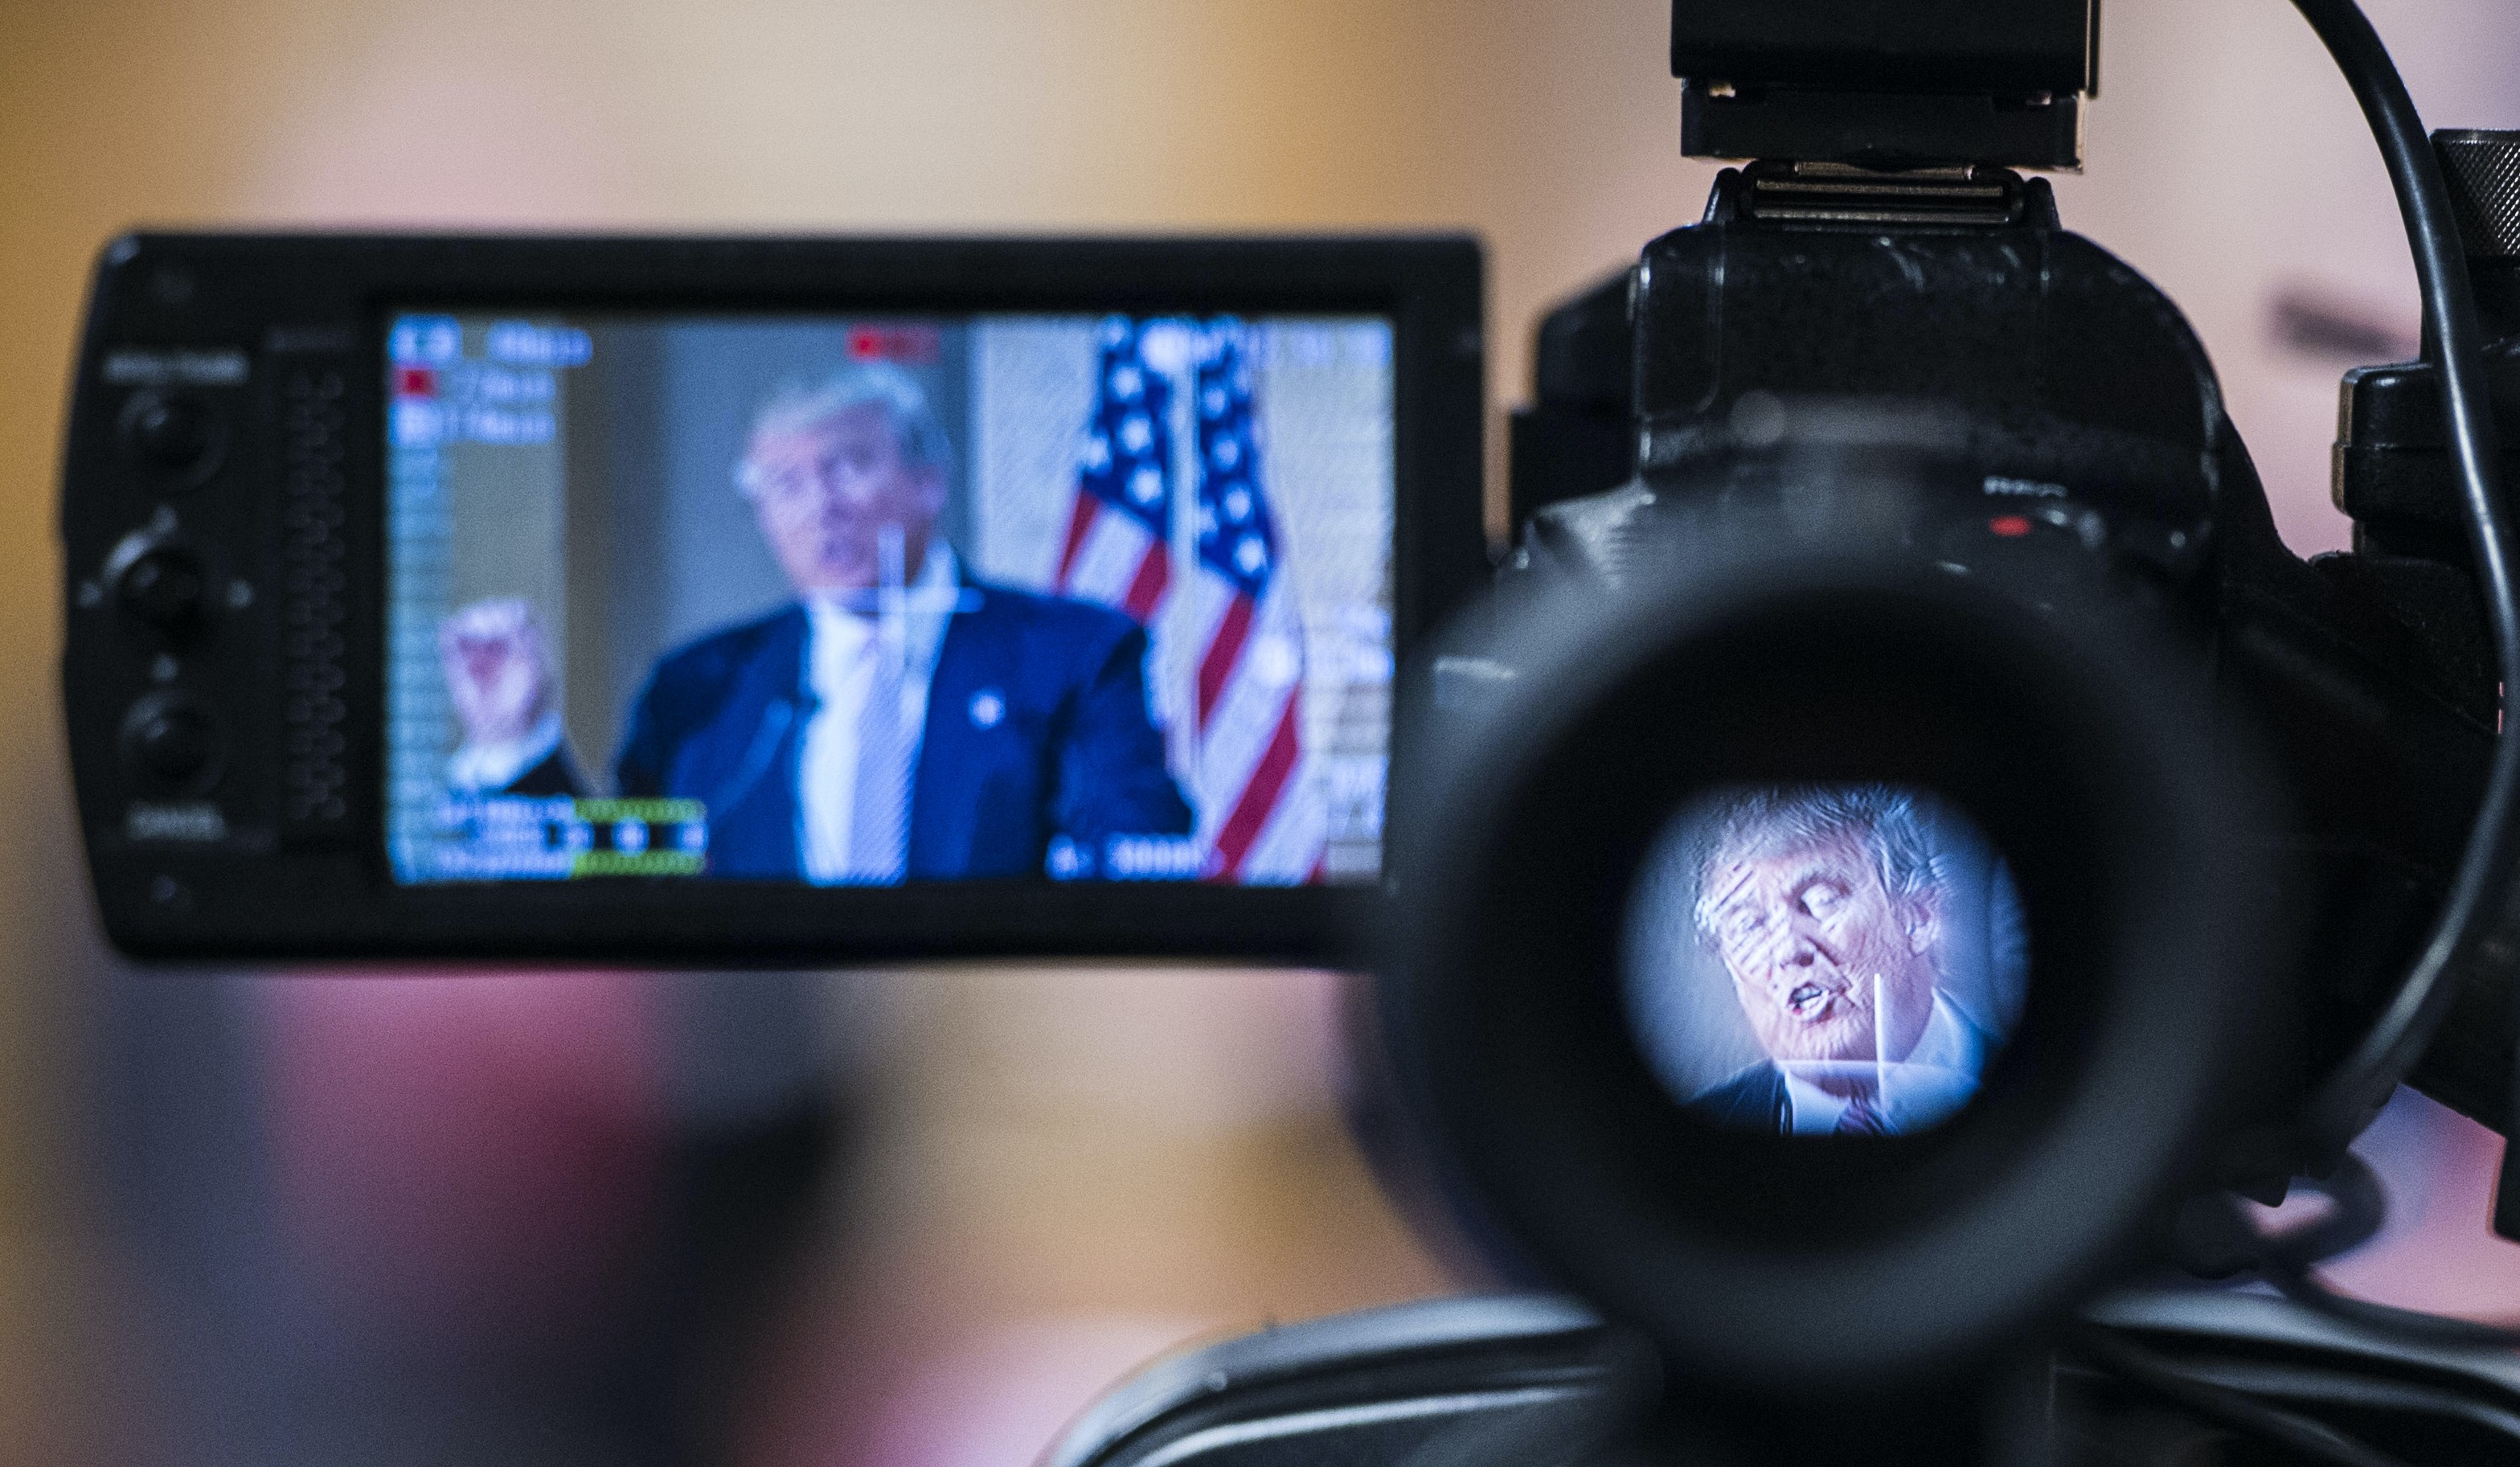 Donald Trump is seen speaking through a camera at a press conference.